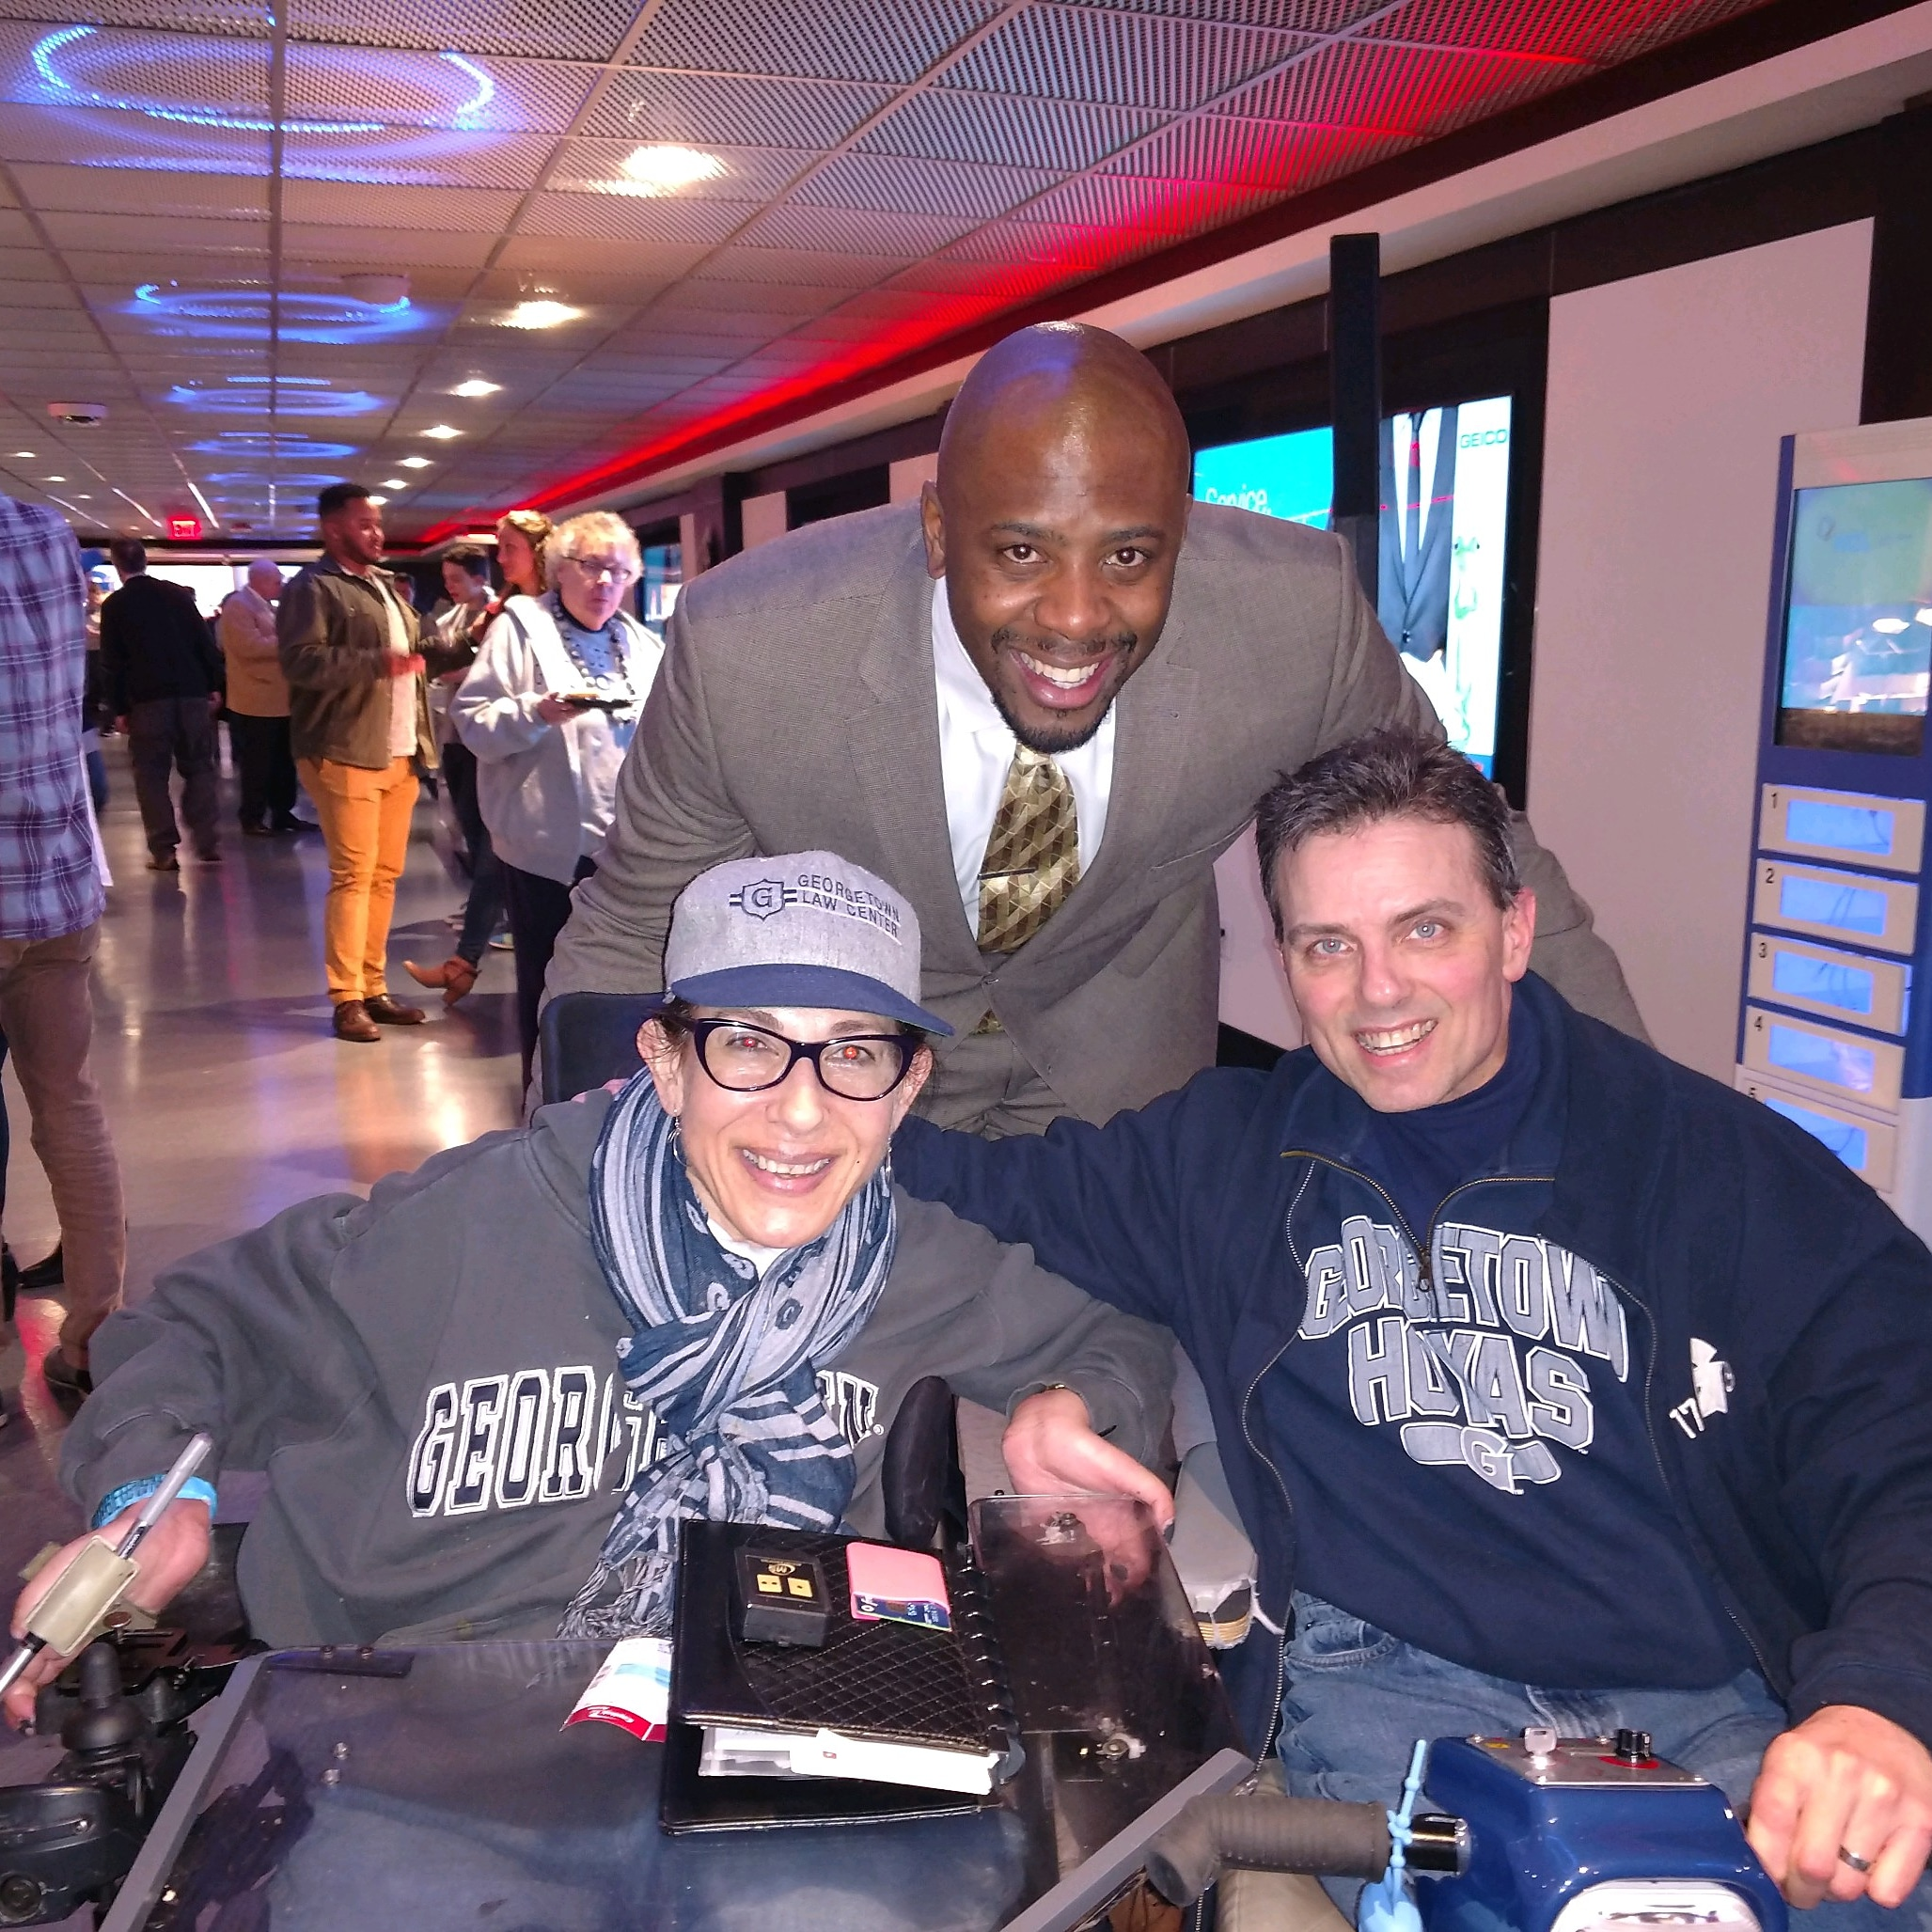 Happy on Wheels with Patrick Ewing Jr. at a reception before the final Georgetown men's basketball home game of the season, 3-19.